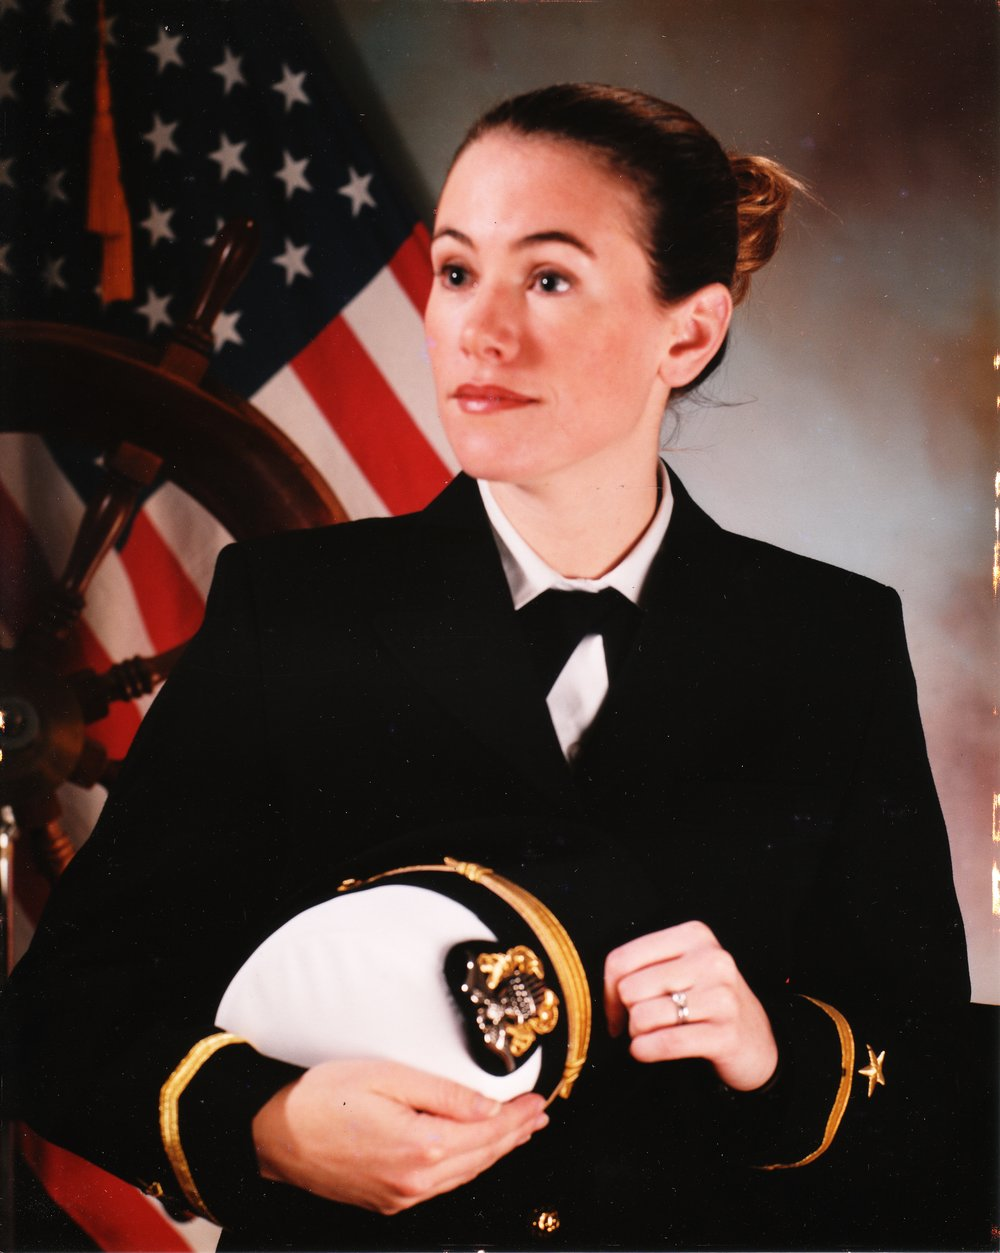 MilitaryService - Service and leadership have been central to Missy's life. She served as a Surface Warfare Officer in the United States Navy and deployed aboard the USS Trenton (LPD-14) during Operation Enduring Freedom. She began studying leadership as a Naval ROTC midshipman at Villanova University, where she graduated with honors in 2000, after having earned a scholarship from the Navy.After completing her active duty service, Missy earned her master's degree from Old Dominion University, and completed the Distance Education Command and Staff Program with the Naval War College.